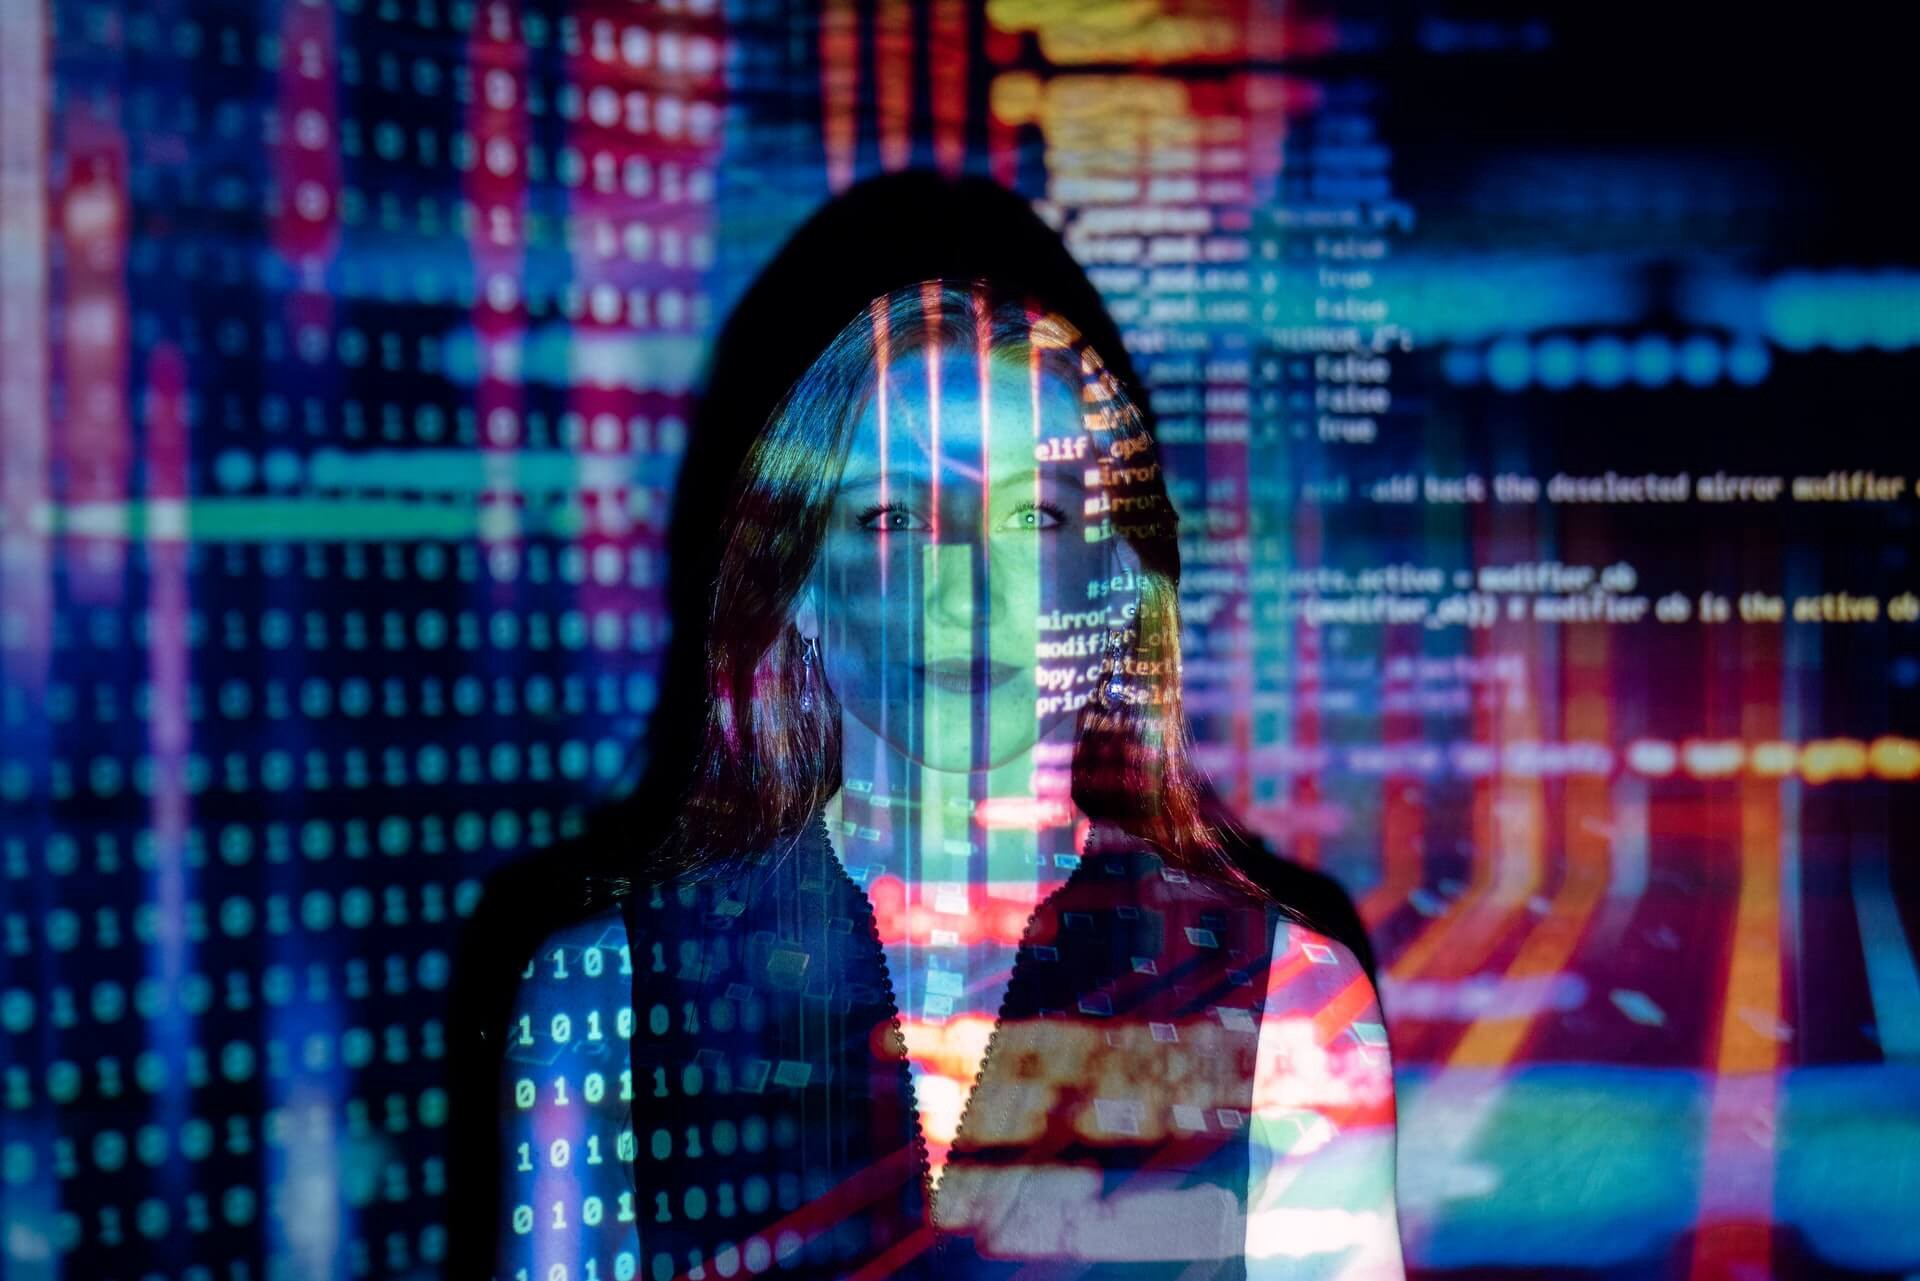 Software engineer stands in her office as lines of code are projected onto her face and the walls of the office.